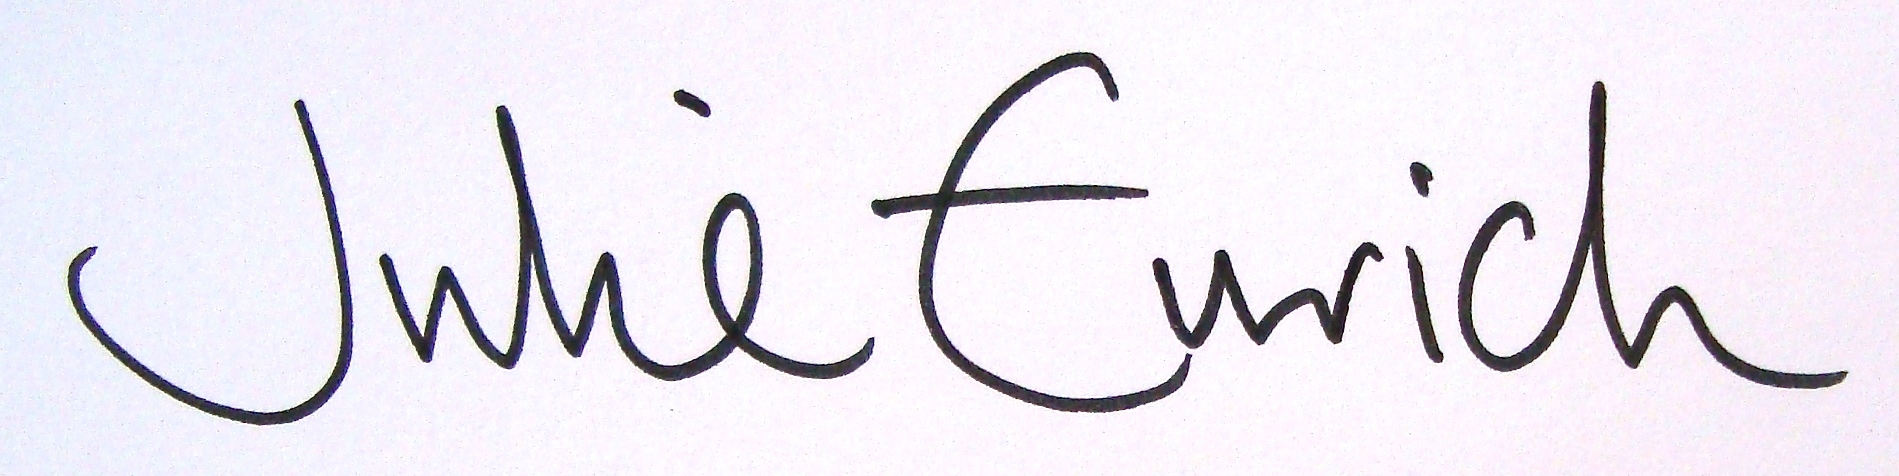 Julie  Eurich Signature